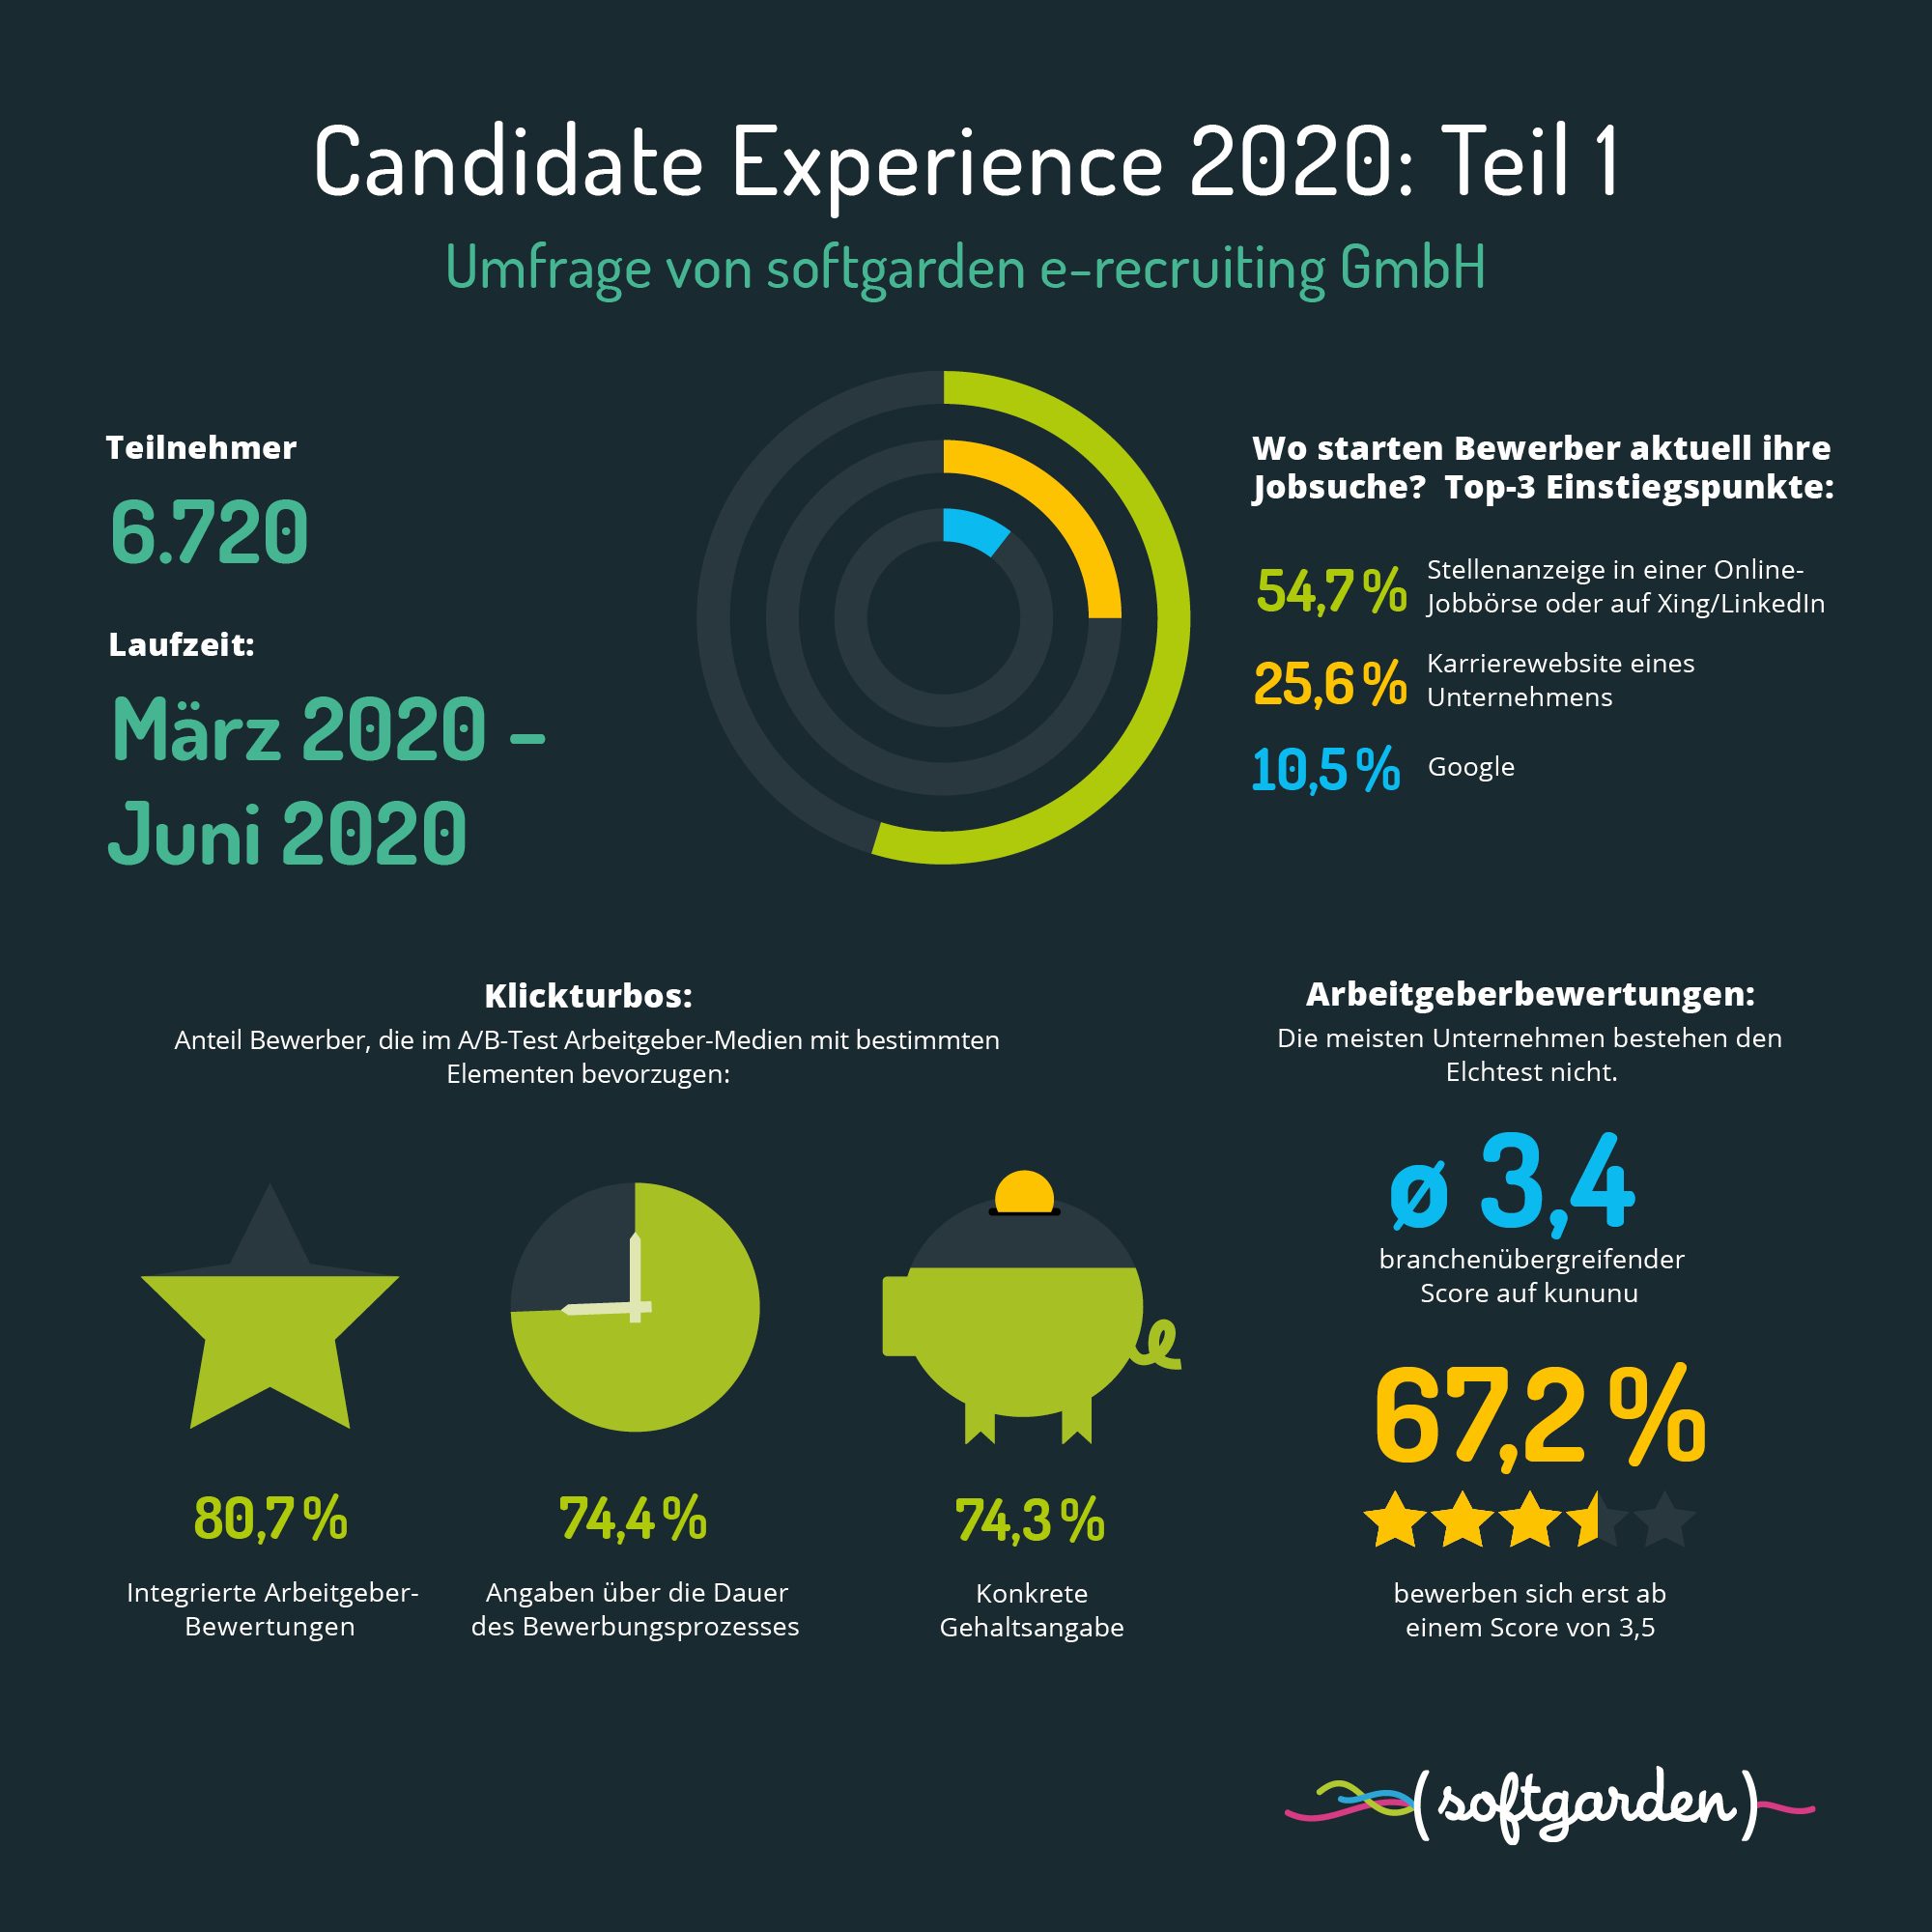 Candidate Experience 2020